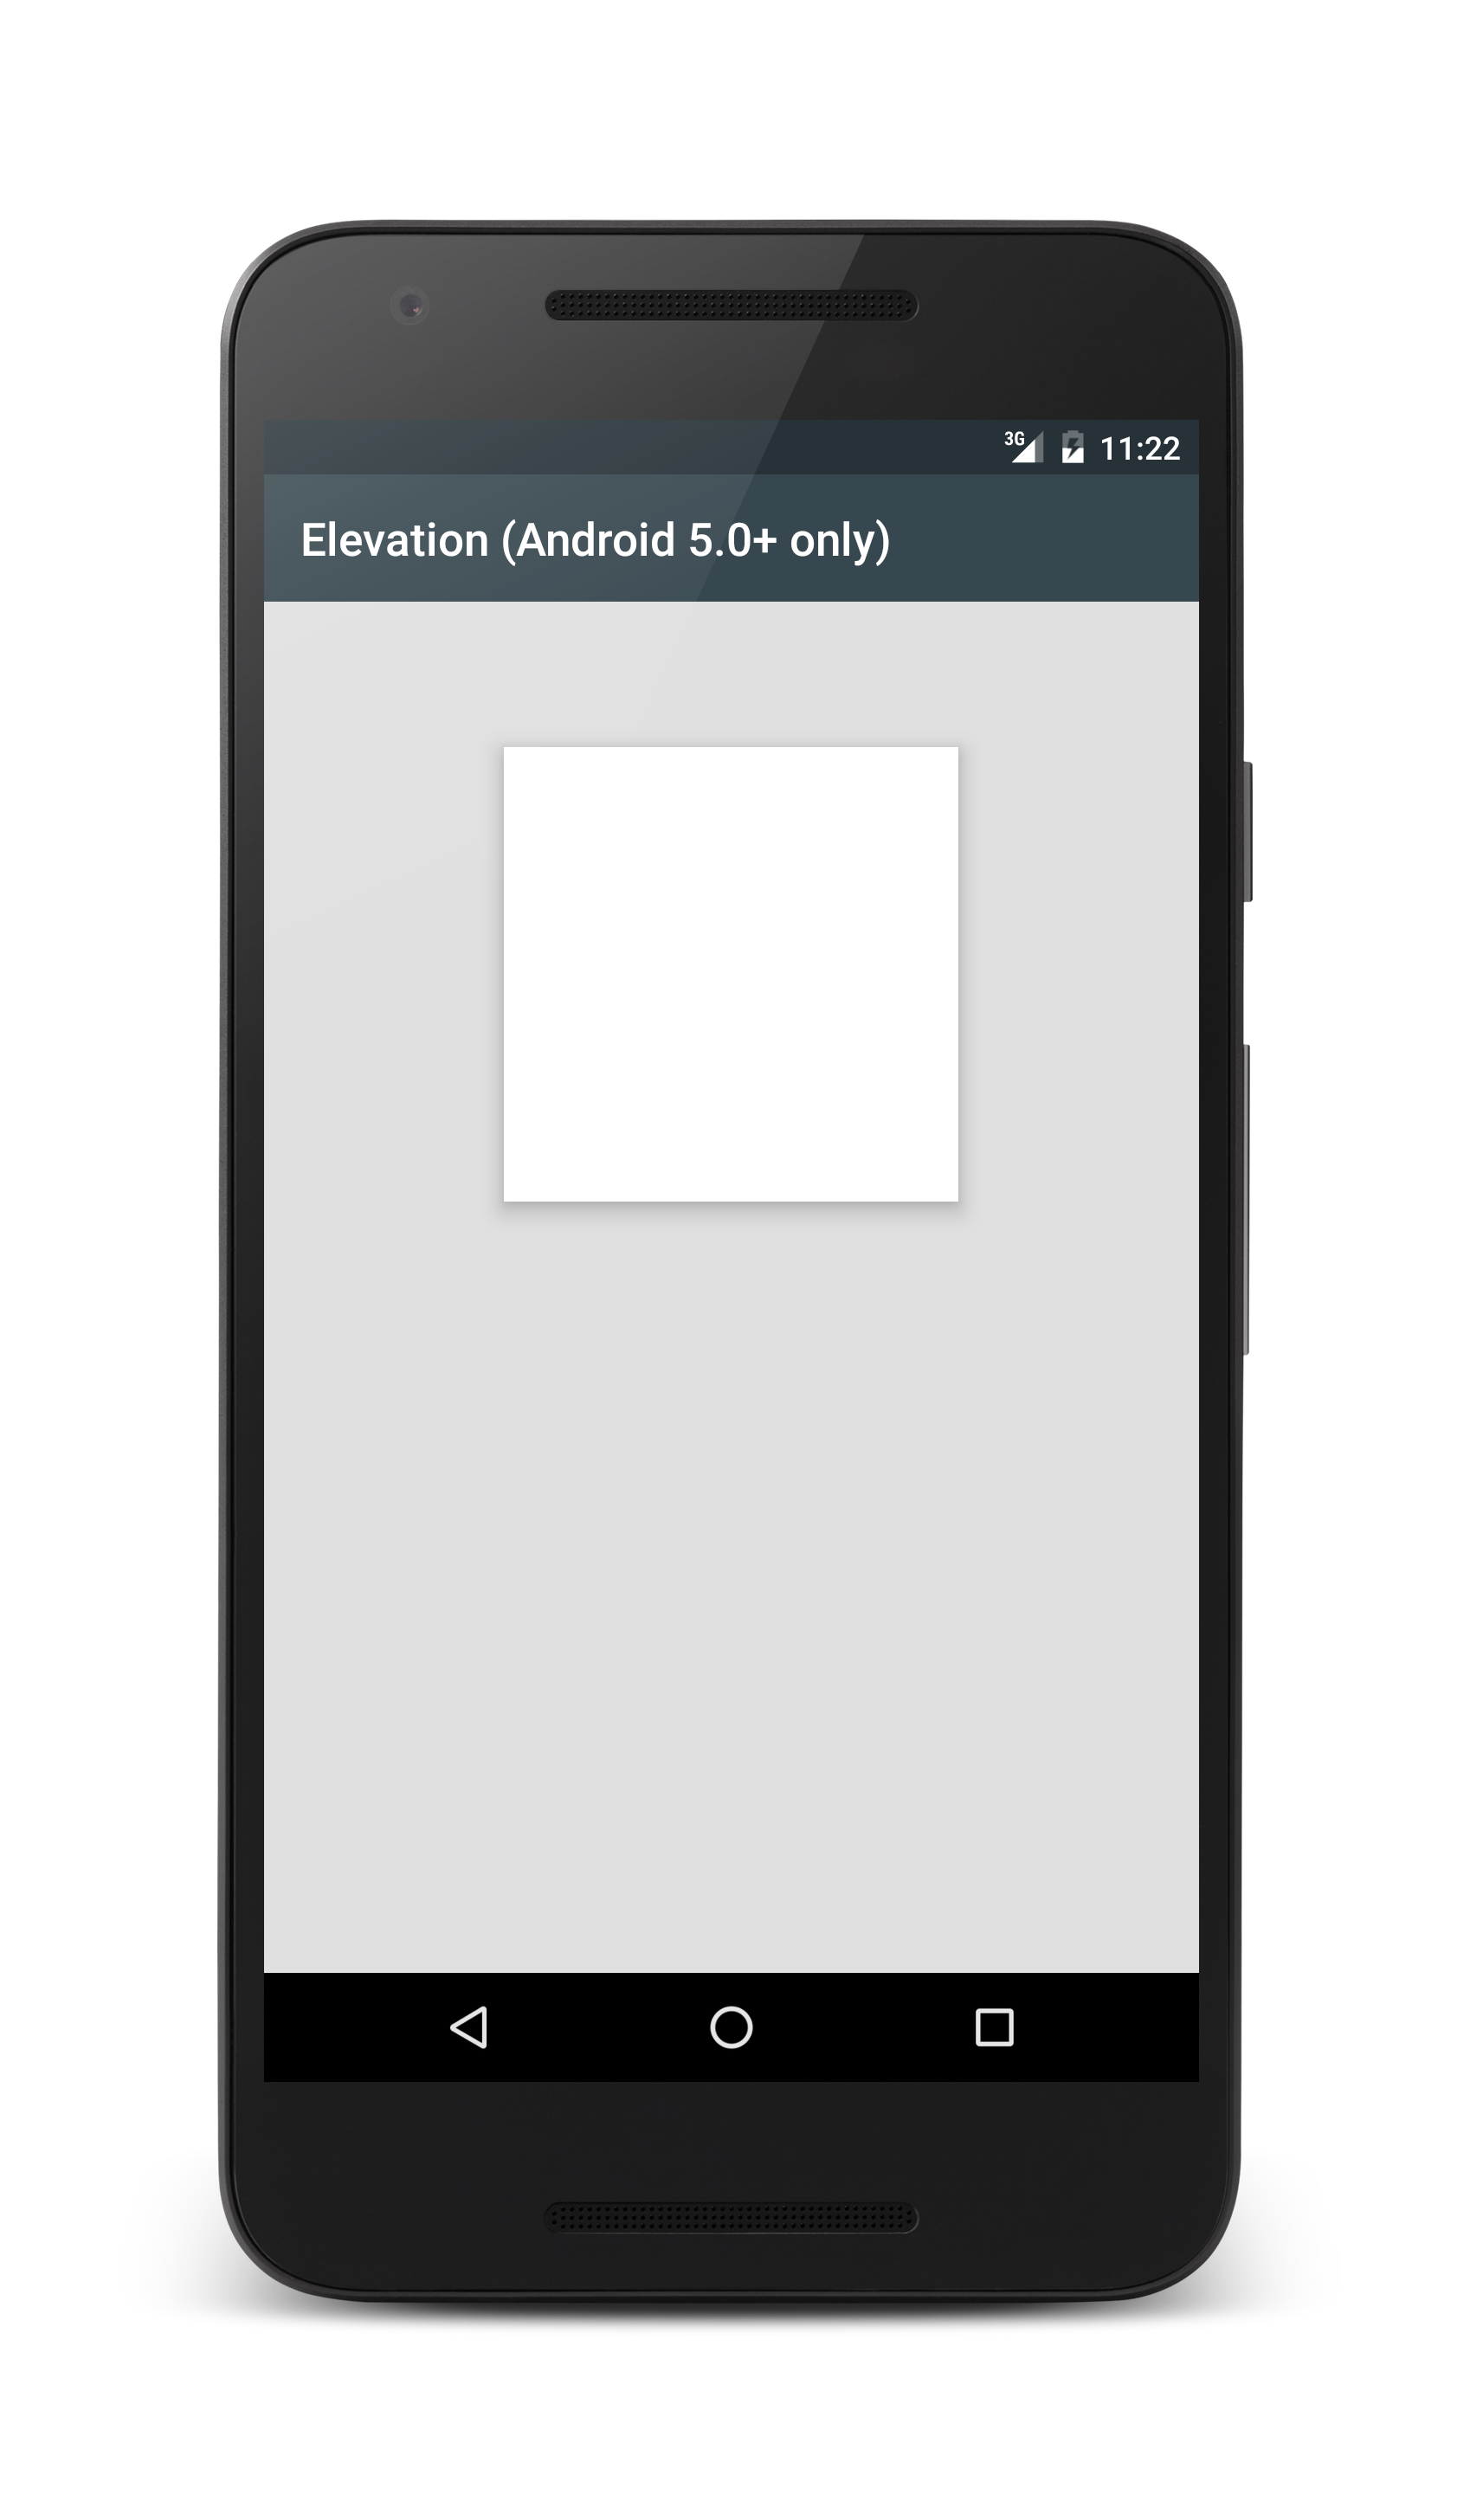 elevation-property-android-5.0